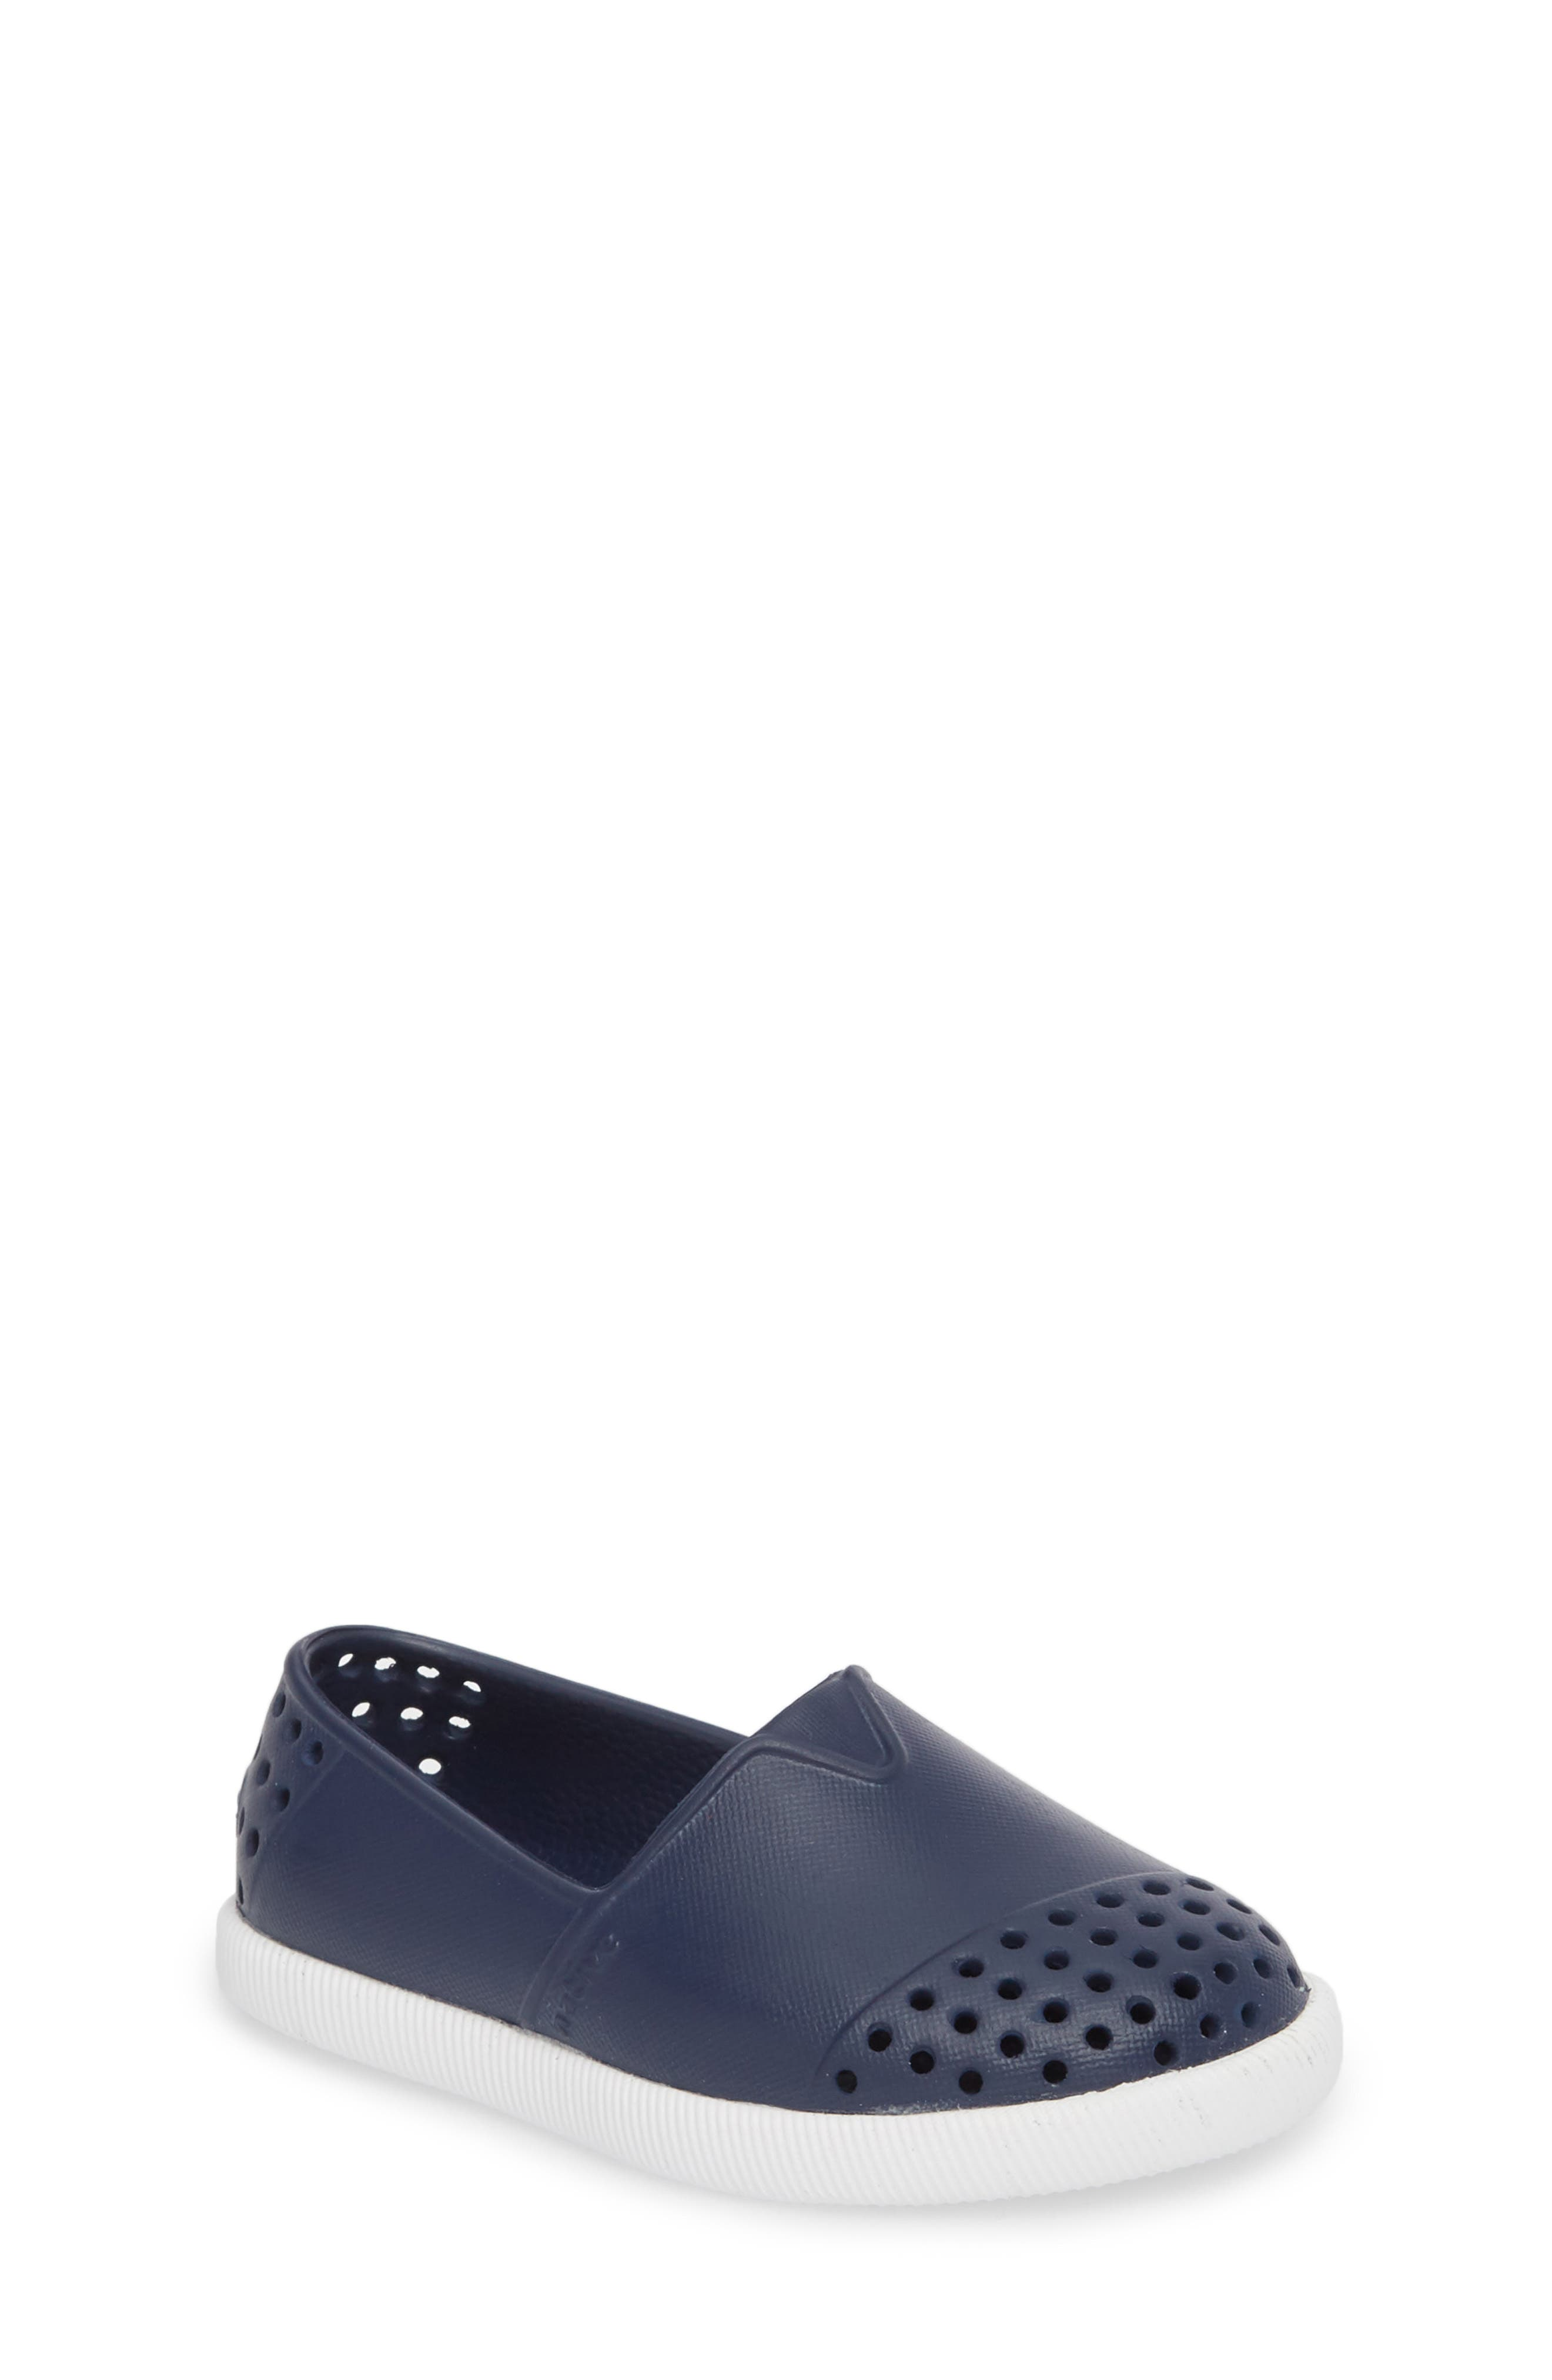 Verona Perforated Water Friendly Slip-On,                         Main,                         color, 414